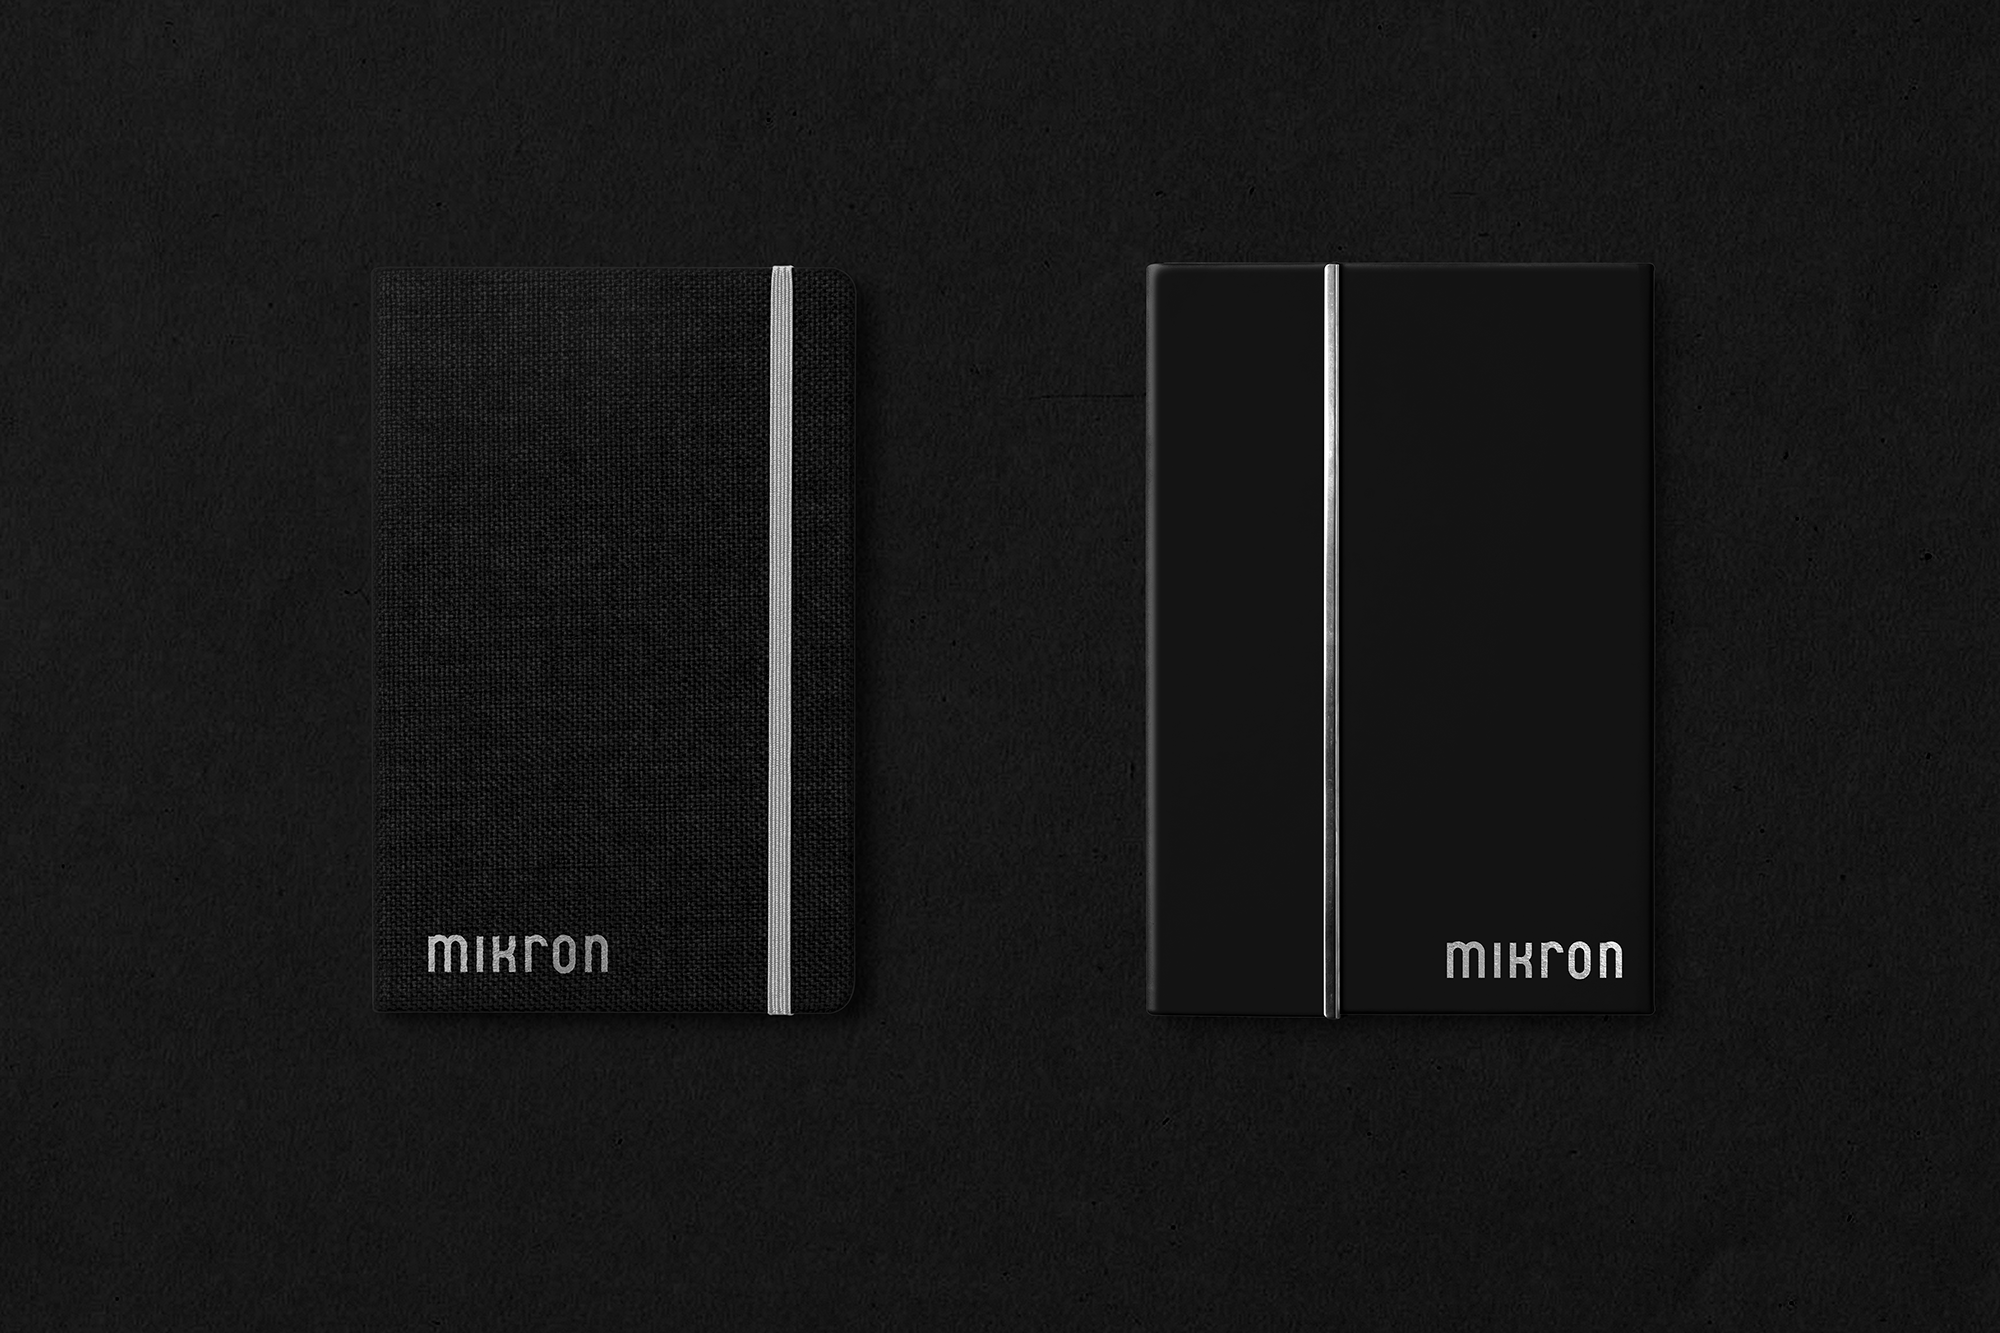 Brand Identity for Mikron, a leading microelectronic enterprise in Europe